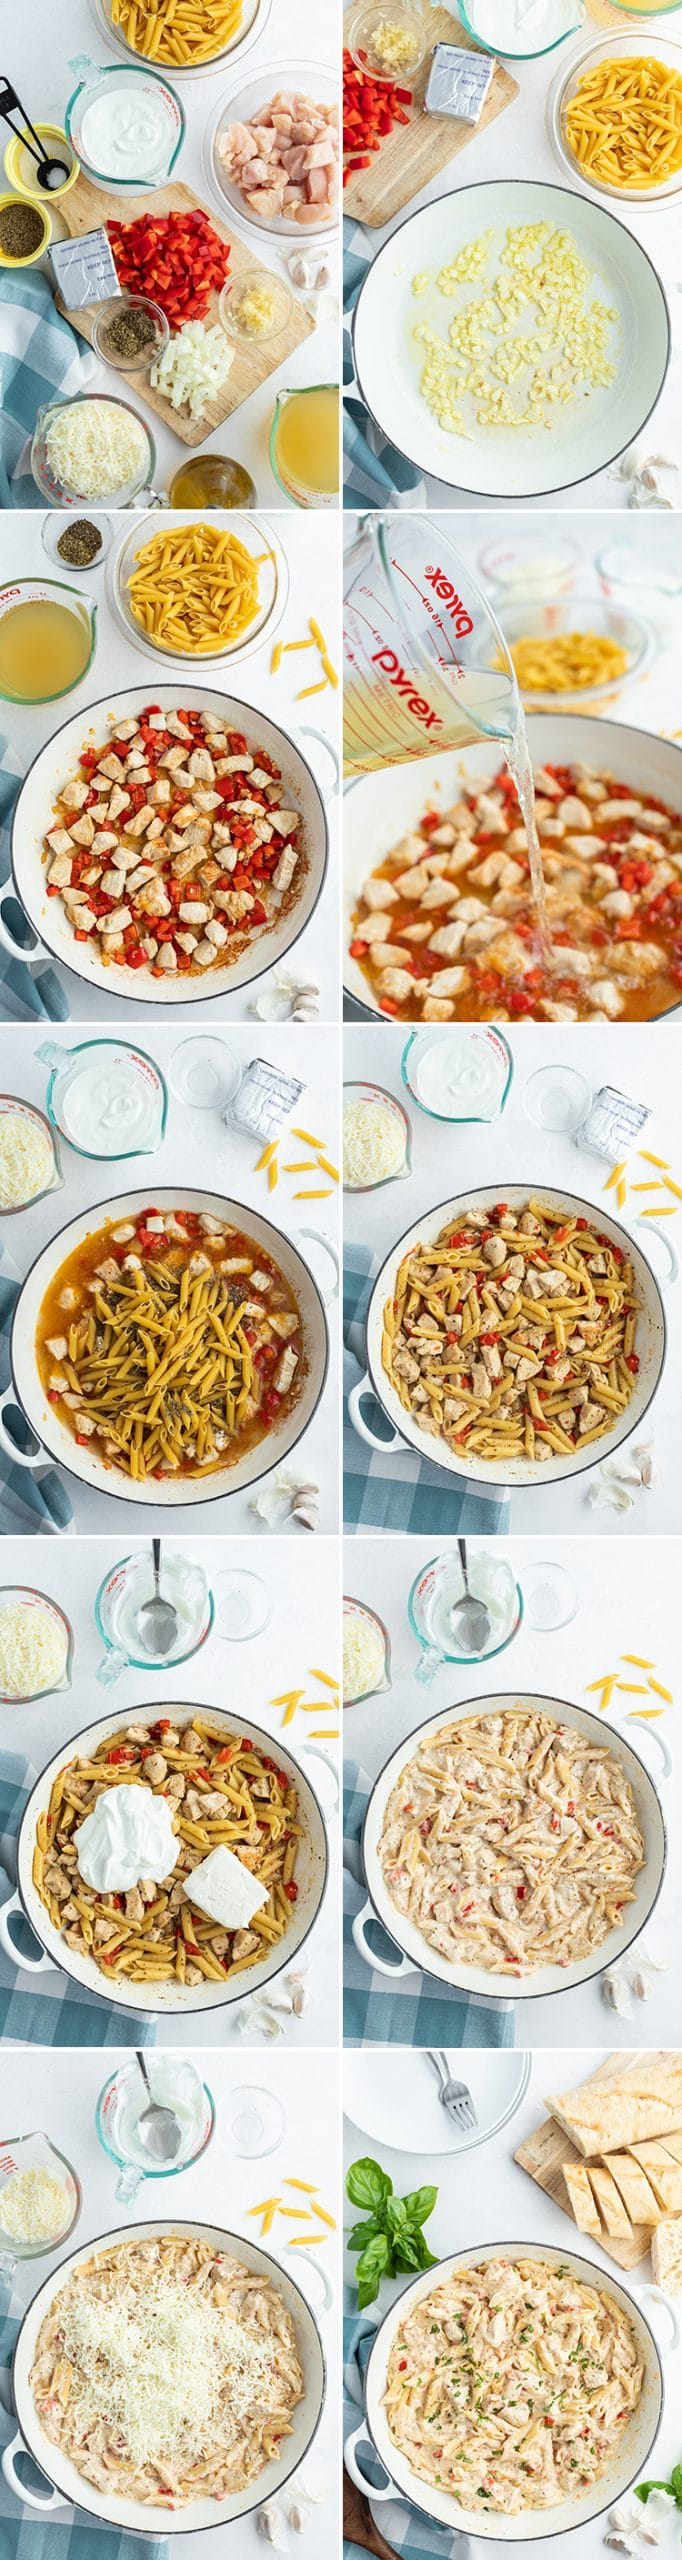 10 step by step photos on how to make cheesy chicken pasta, showing the ingredients, cooking the onion, cooking the bell pepper and chicken, adding in the chicken broth, and the noodles, cooking and adding in yogurt and cream cheese, adding in shredded cheese, and voila the finished process